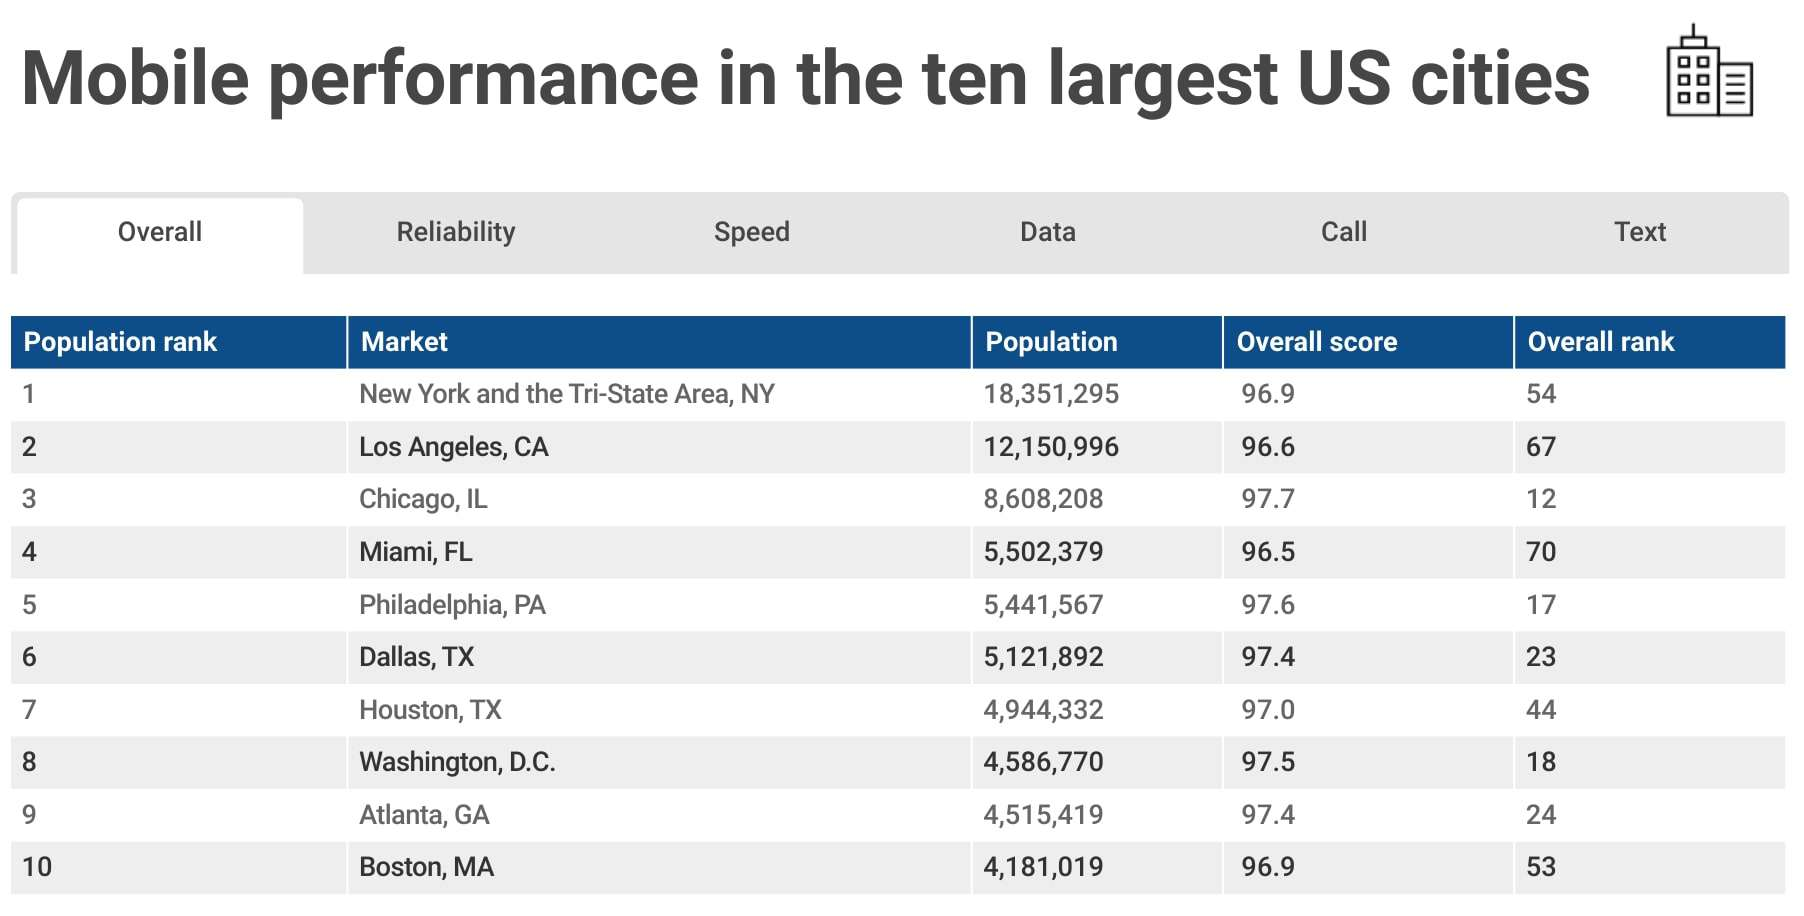 RootMetrics Mobile Performance In Top Largest Cities 1H 2018 01